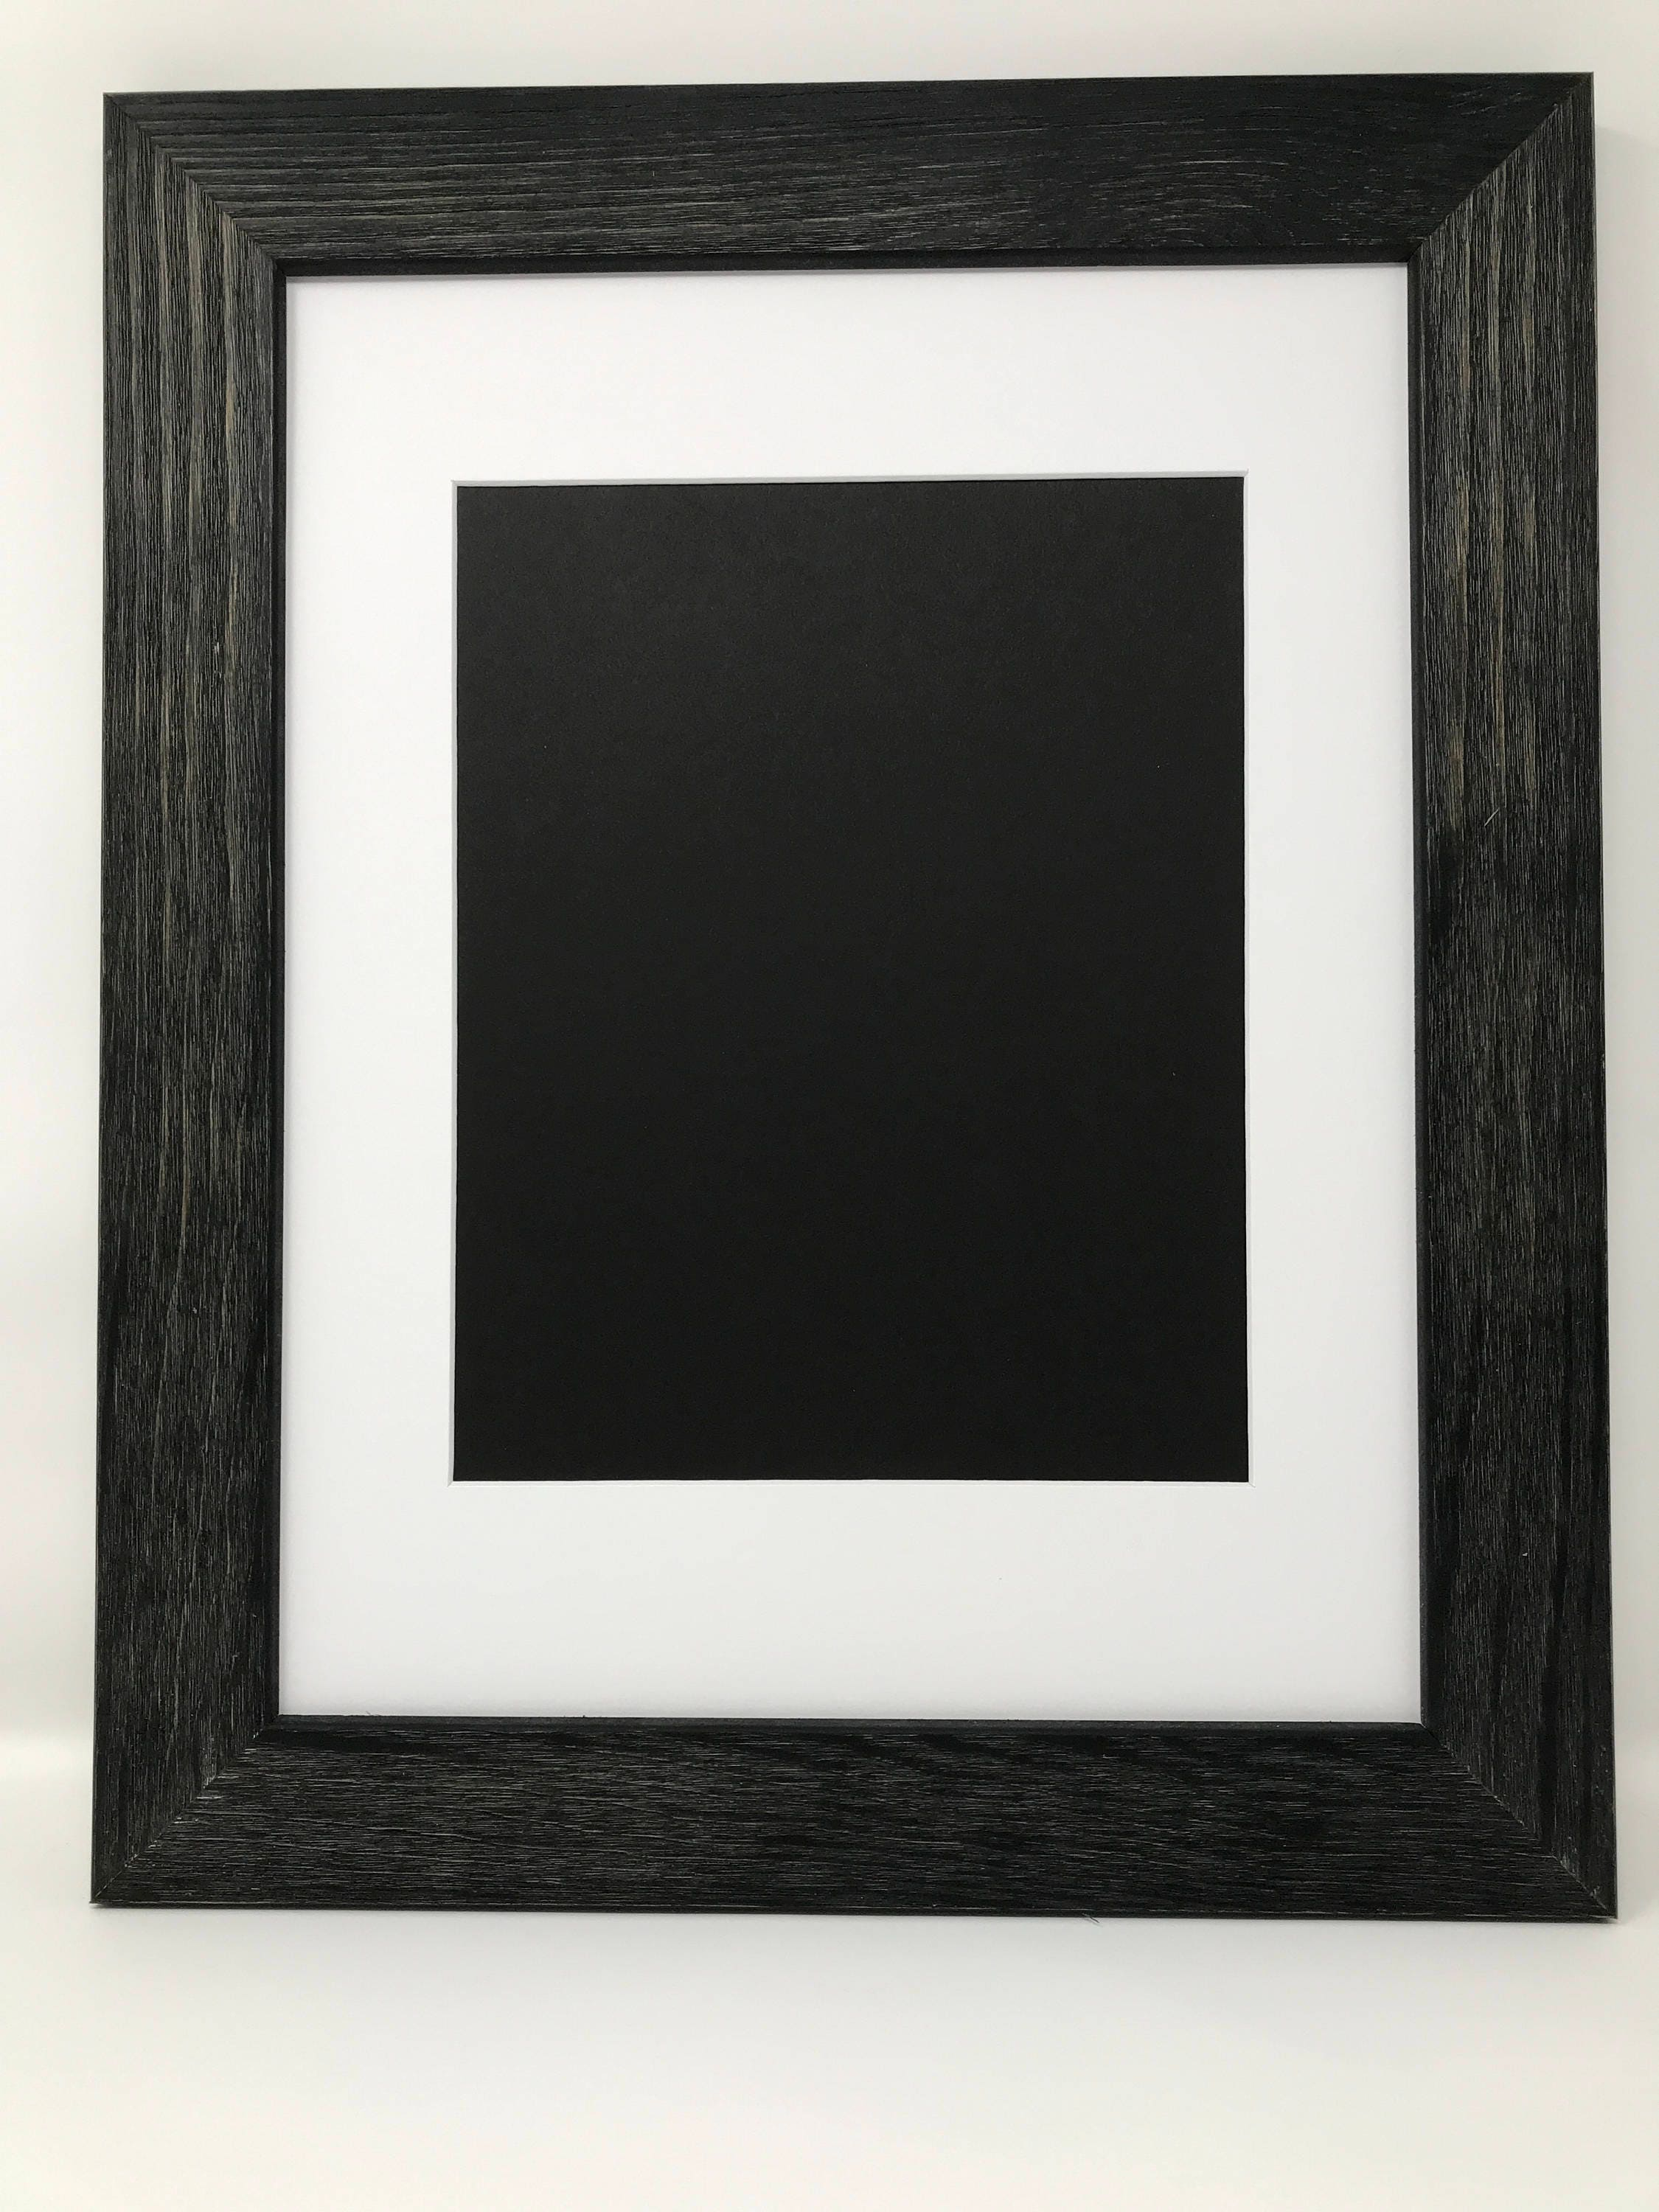 22x28 1.75 Rustic Black Solid Wood Picture Frame with White Mat Cut ...